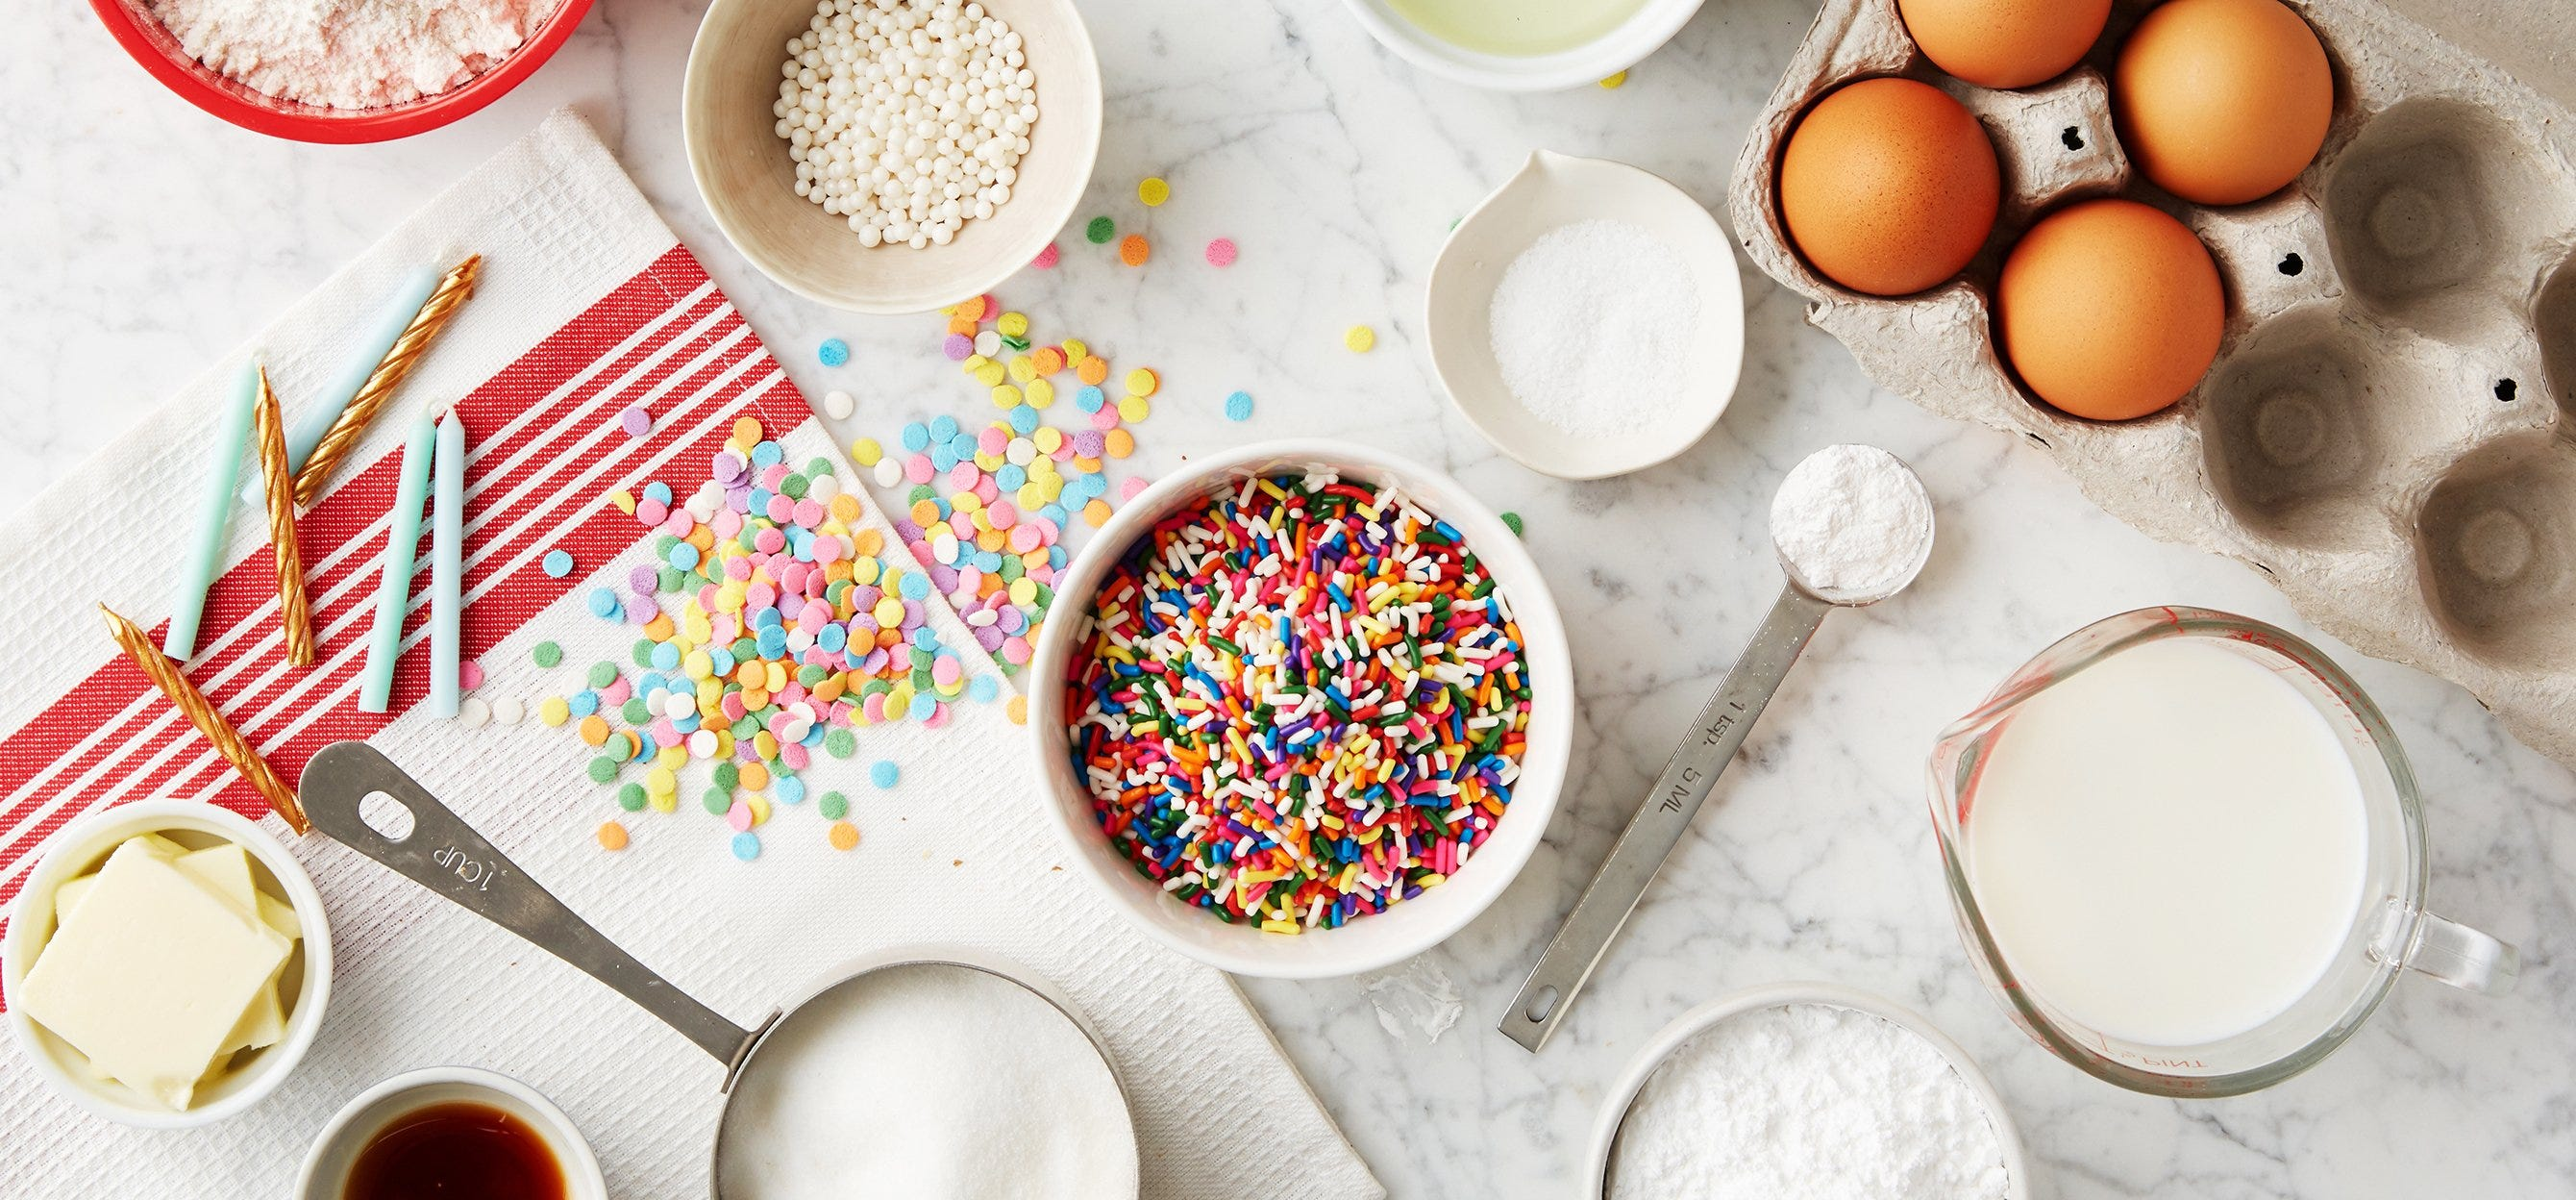 CELEBRATION CUPCAKES WITH COLORFUL SPRINKLES